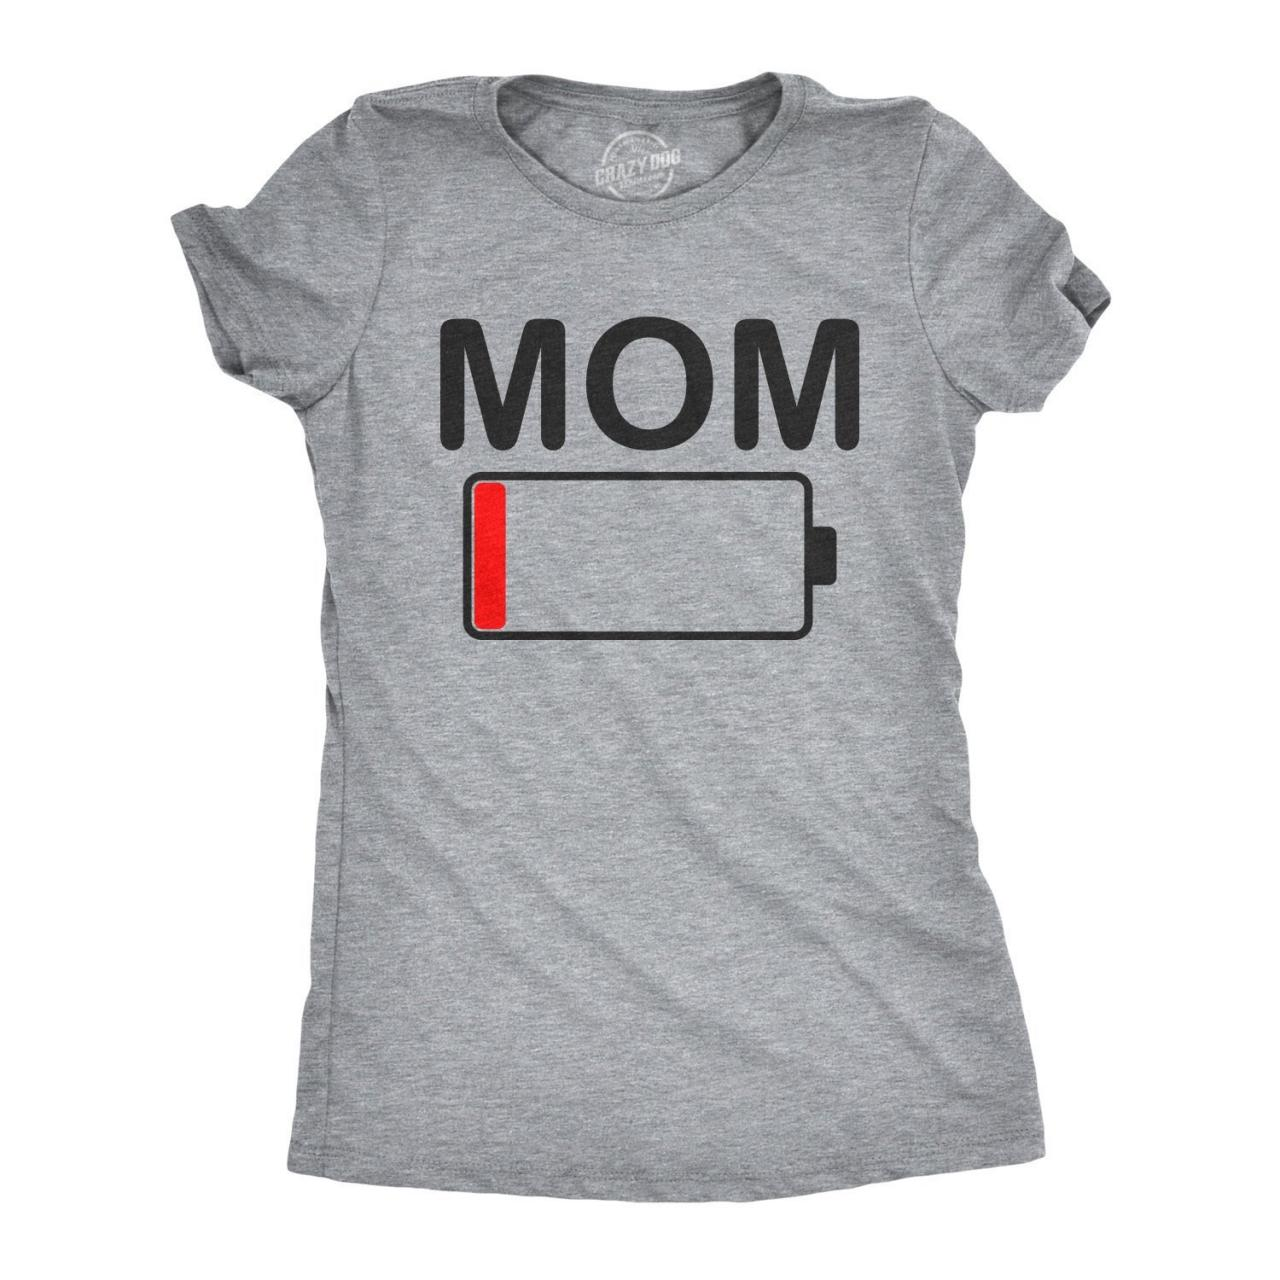 Mom Shirt Funny, New Mom T Shirt, Funny T shirt For Moms, Mom Battery Low T shirt, Tired Mom TShirt, Stressed Out Moms Gift